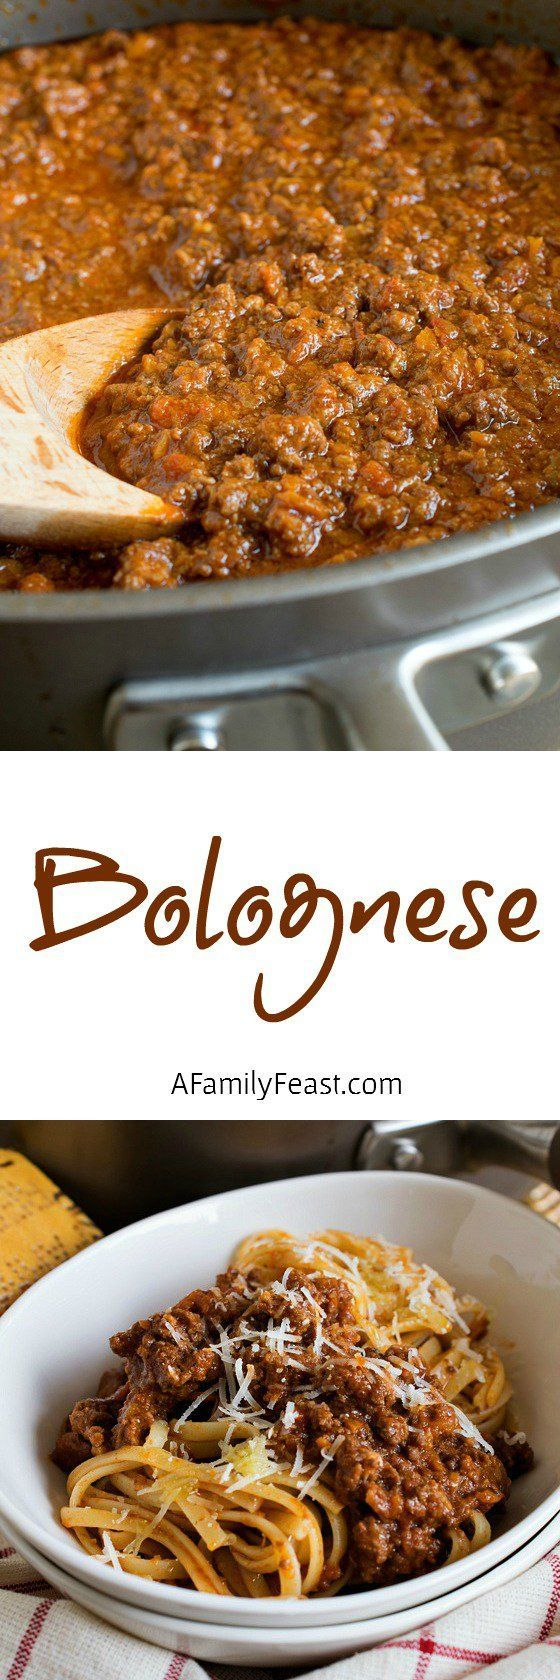 Bolognese ~ a classic Italian meat sauce with incredible flavor and texture